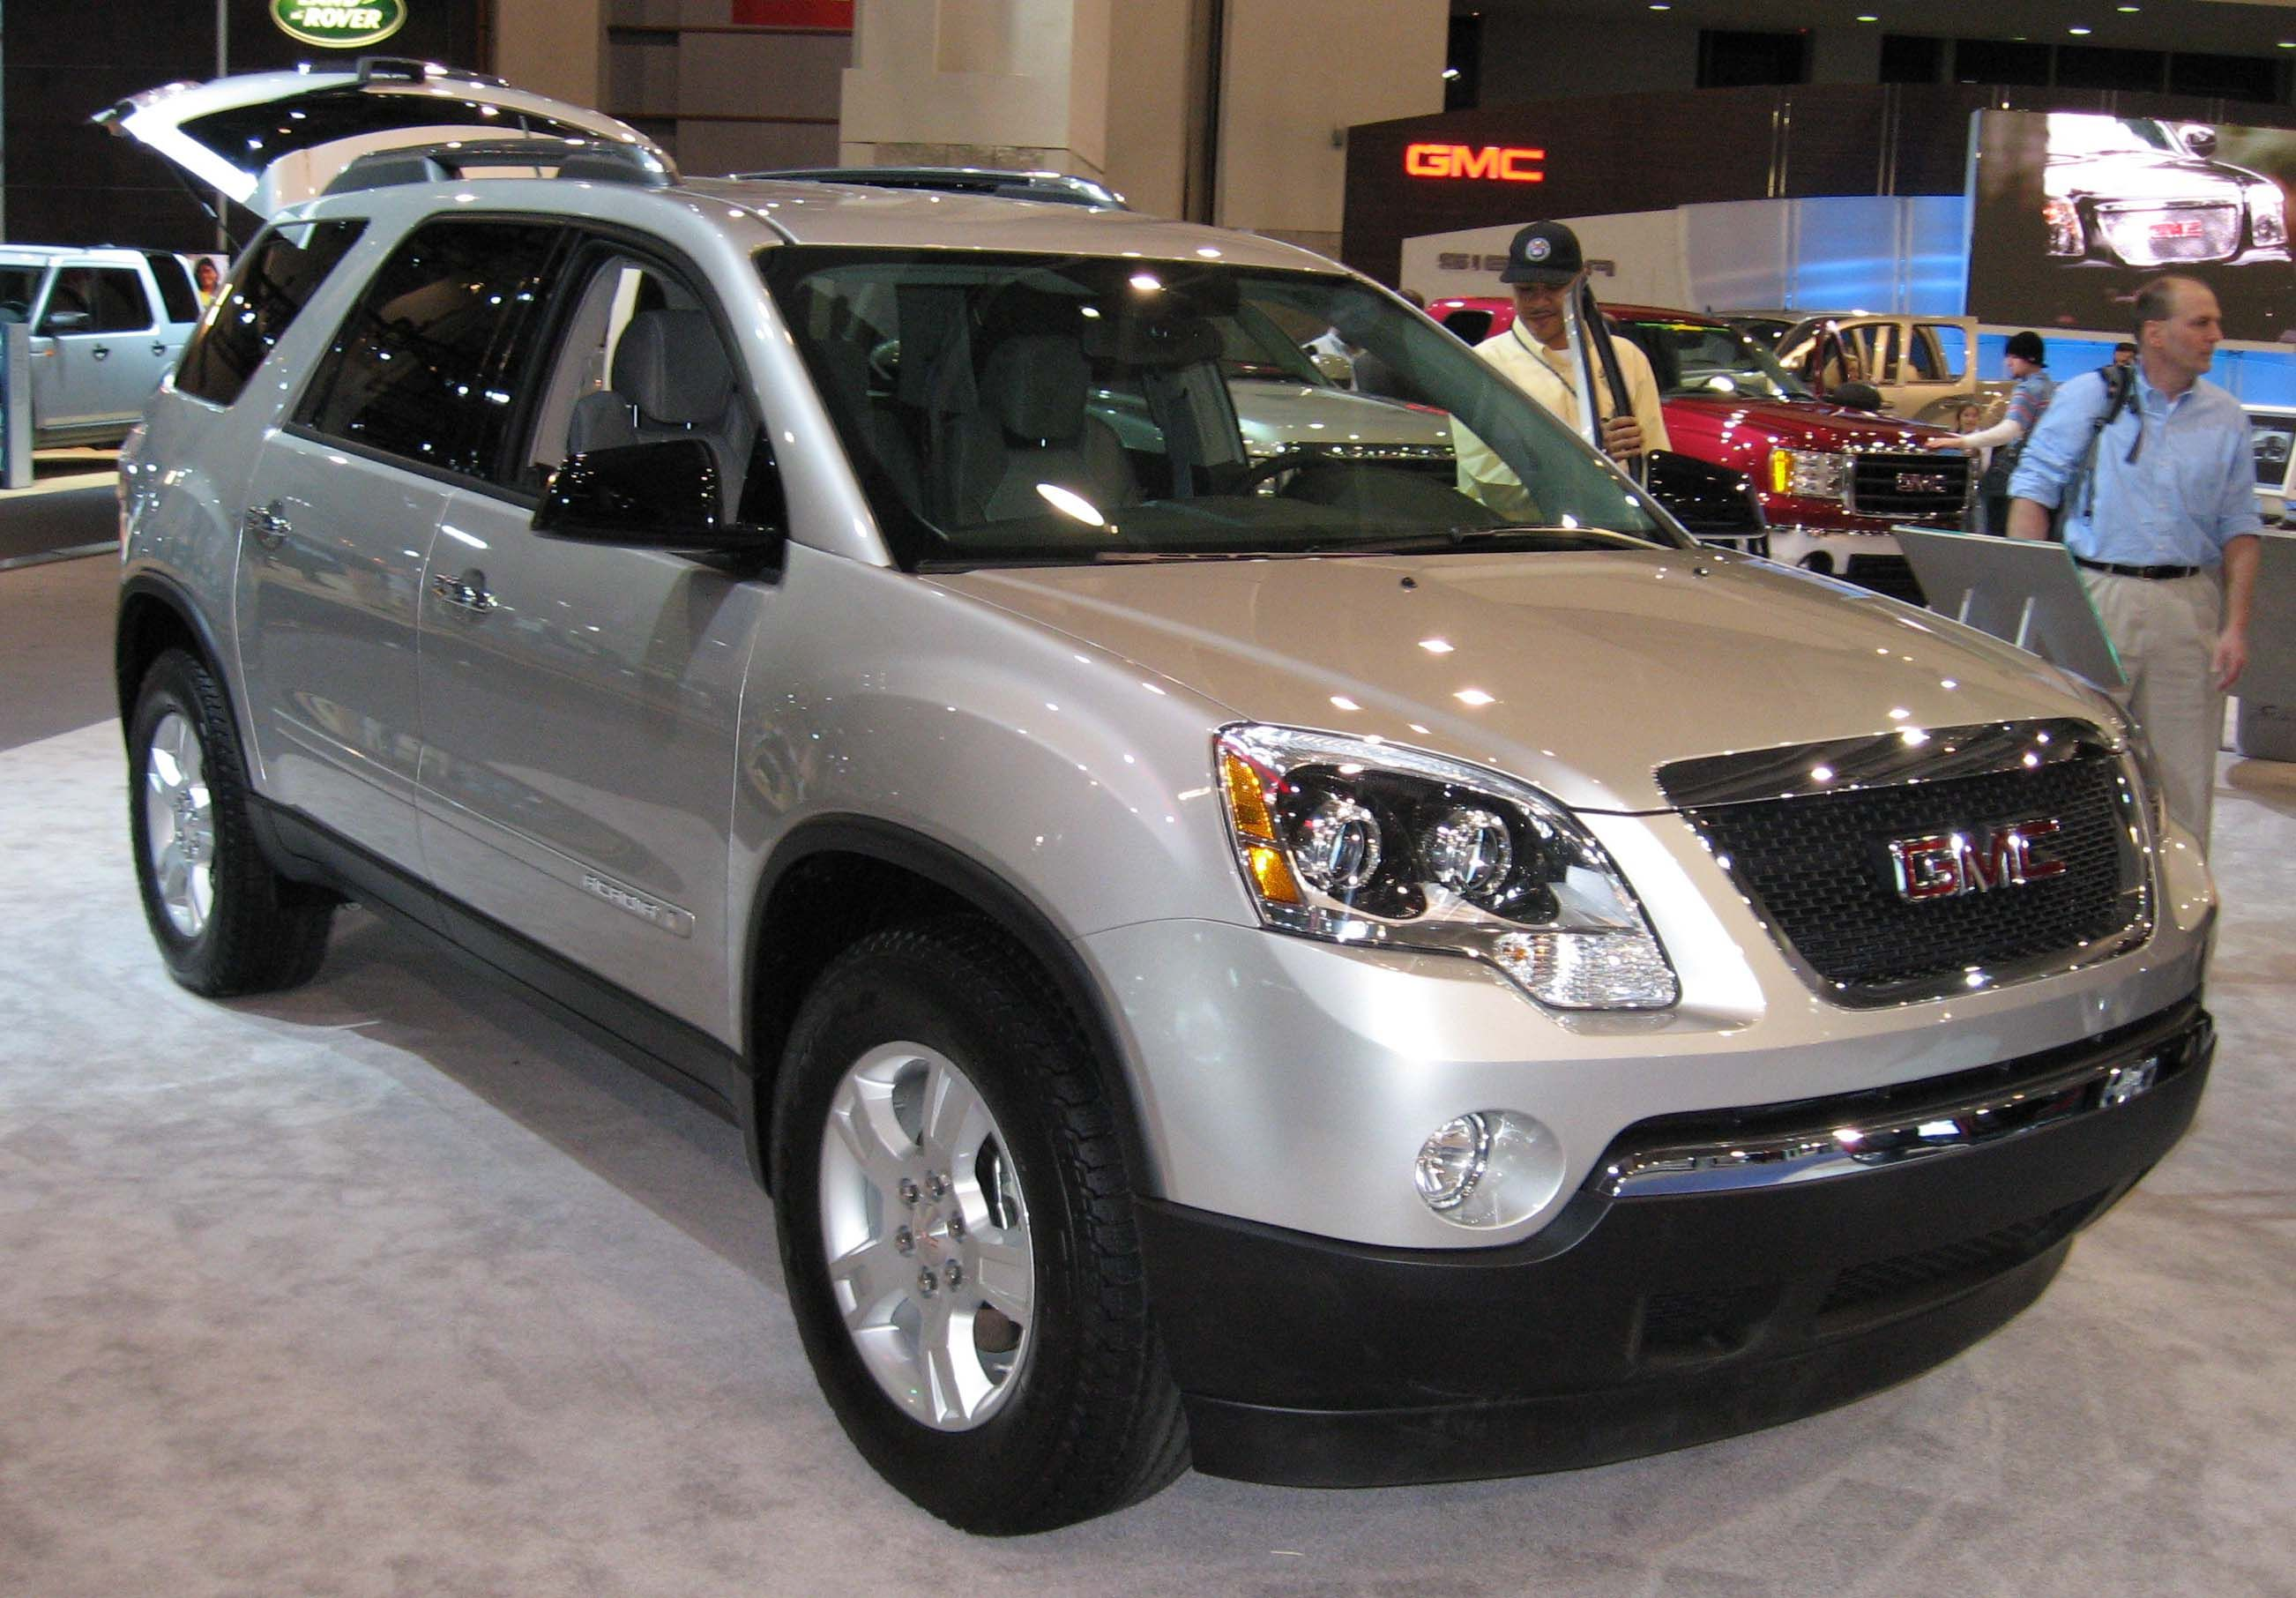 The Gmc Acadia Is A Cool Family Vehicle Why Didn T I Think Of